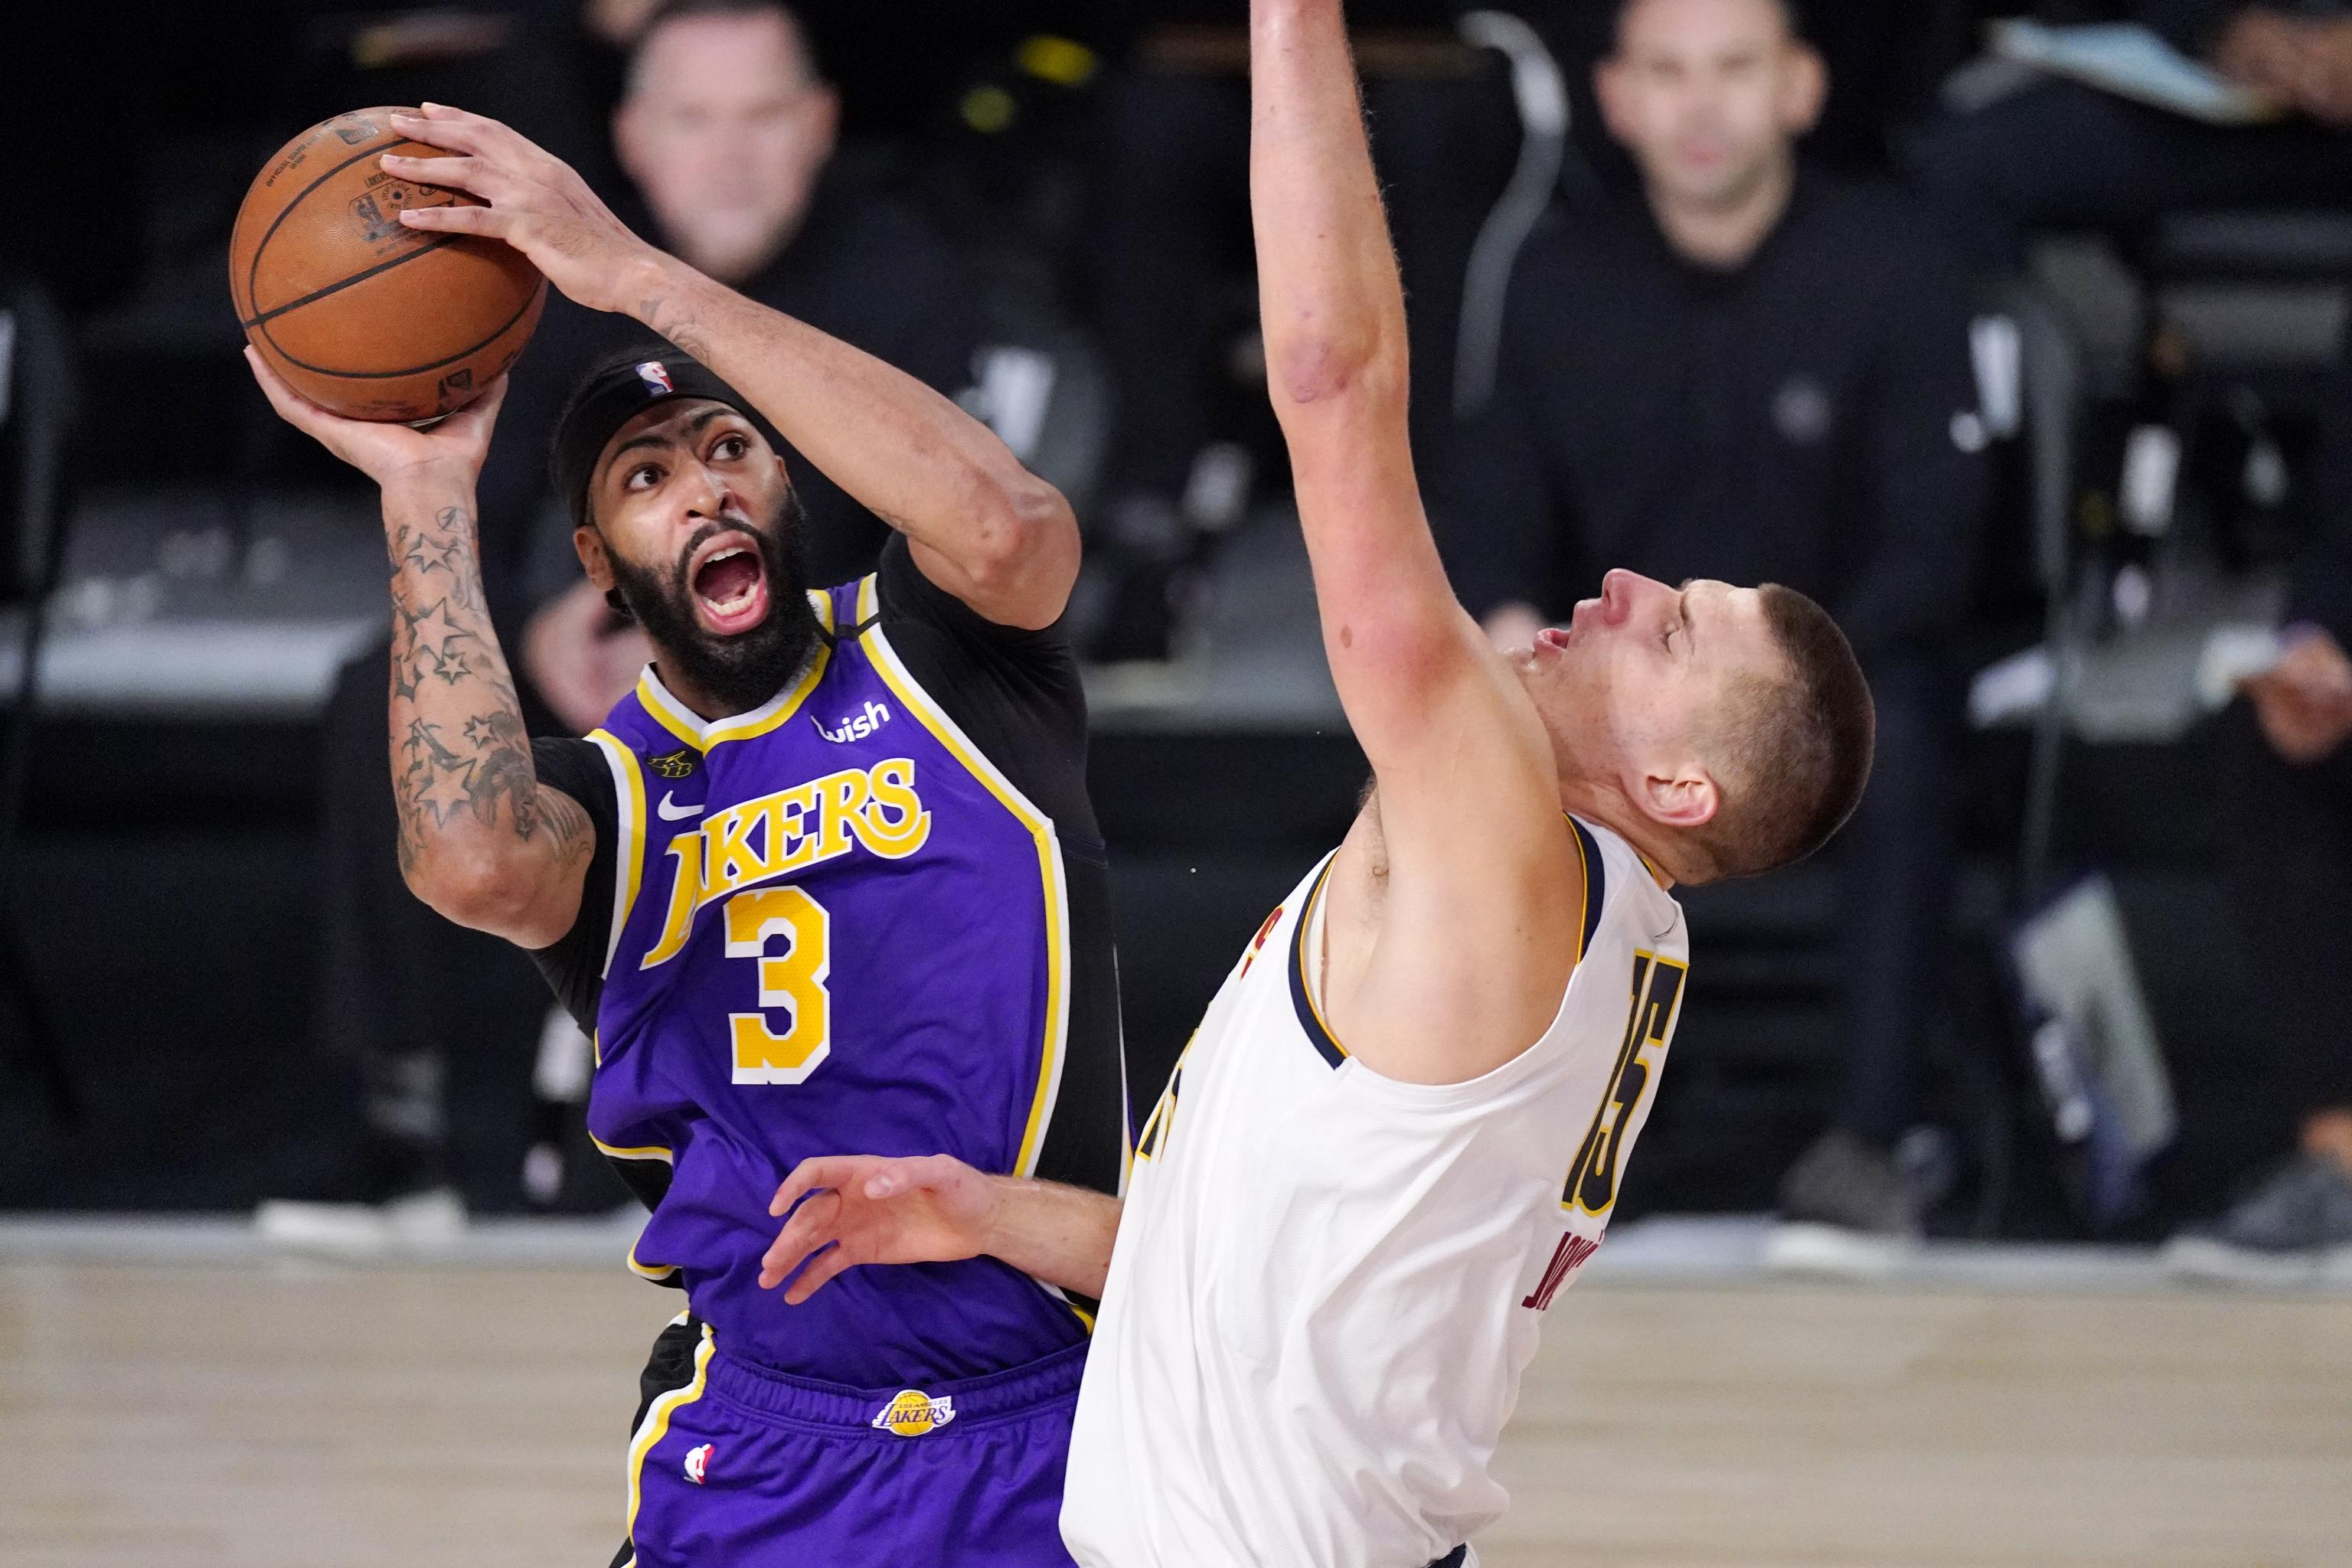 Nba Finals 2020 Heat Vs Lakers Odds Tv Schedule And Game 1 Live Stream Bleacher Report Latest News Videos And Highlights